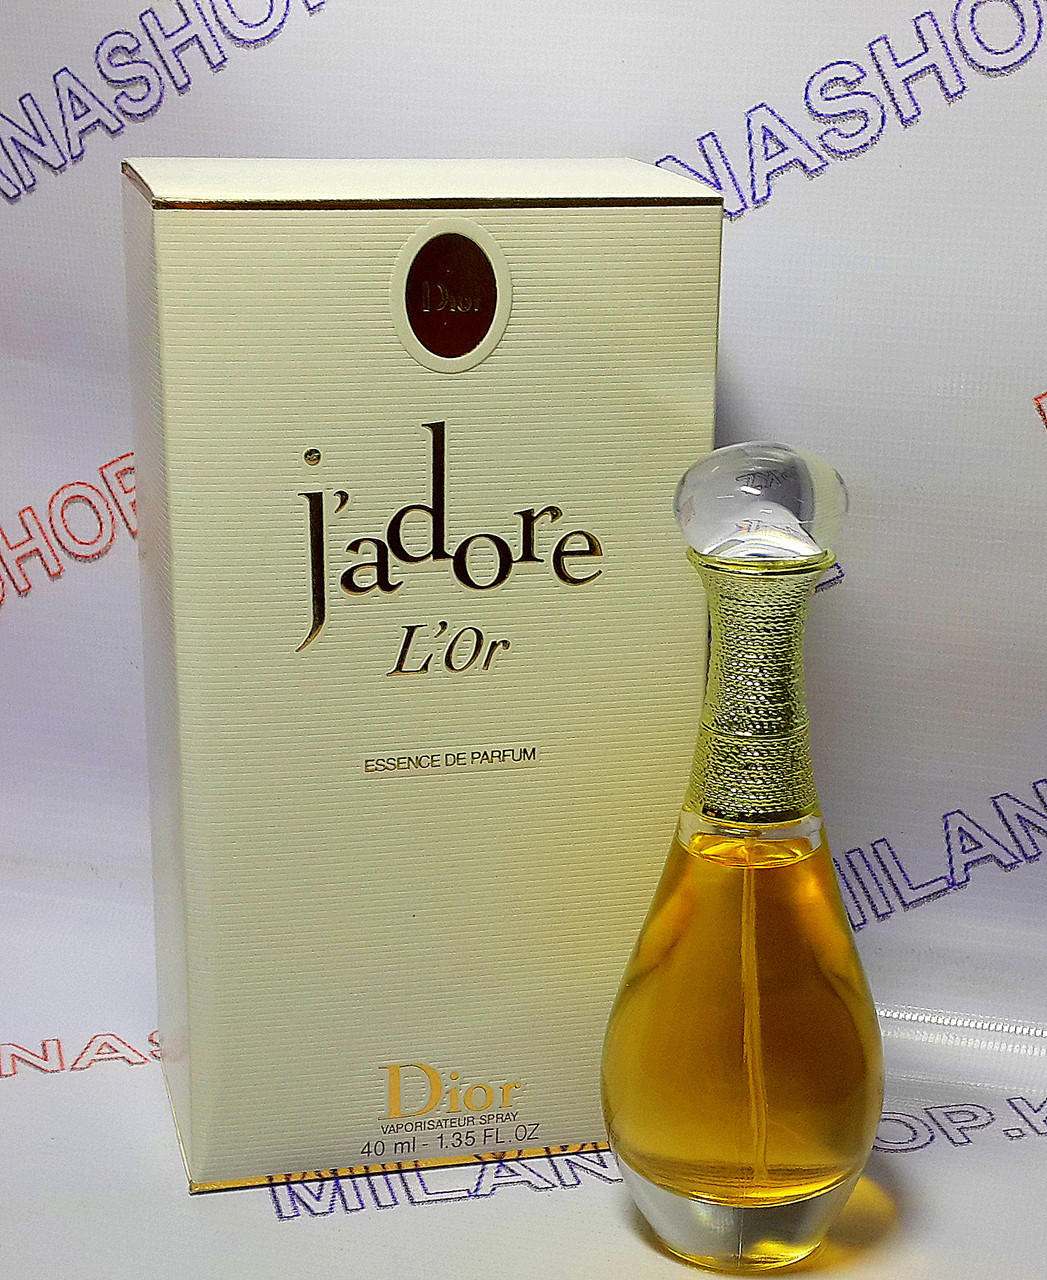 J'adore L'or essence Christian Dior ( 40 мг )